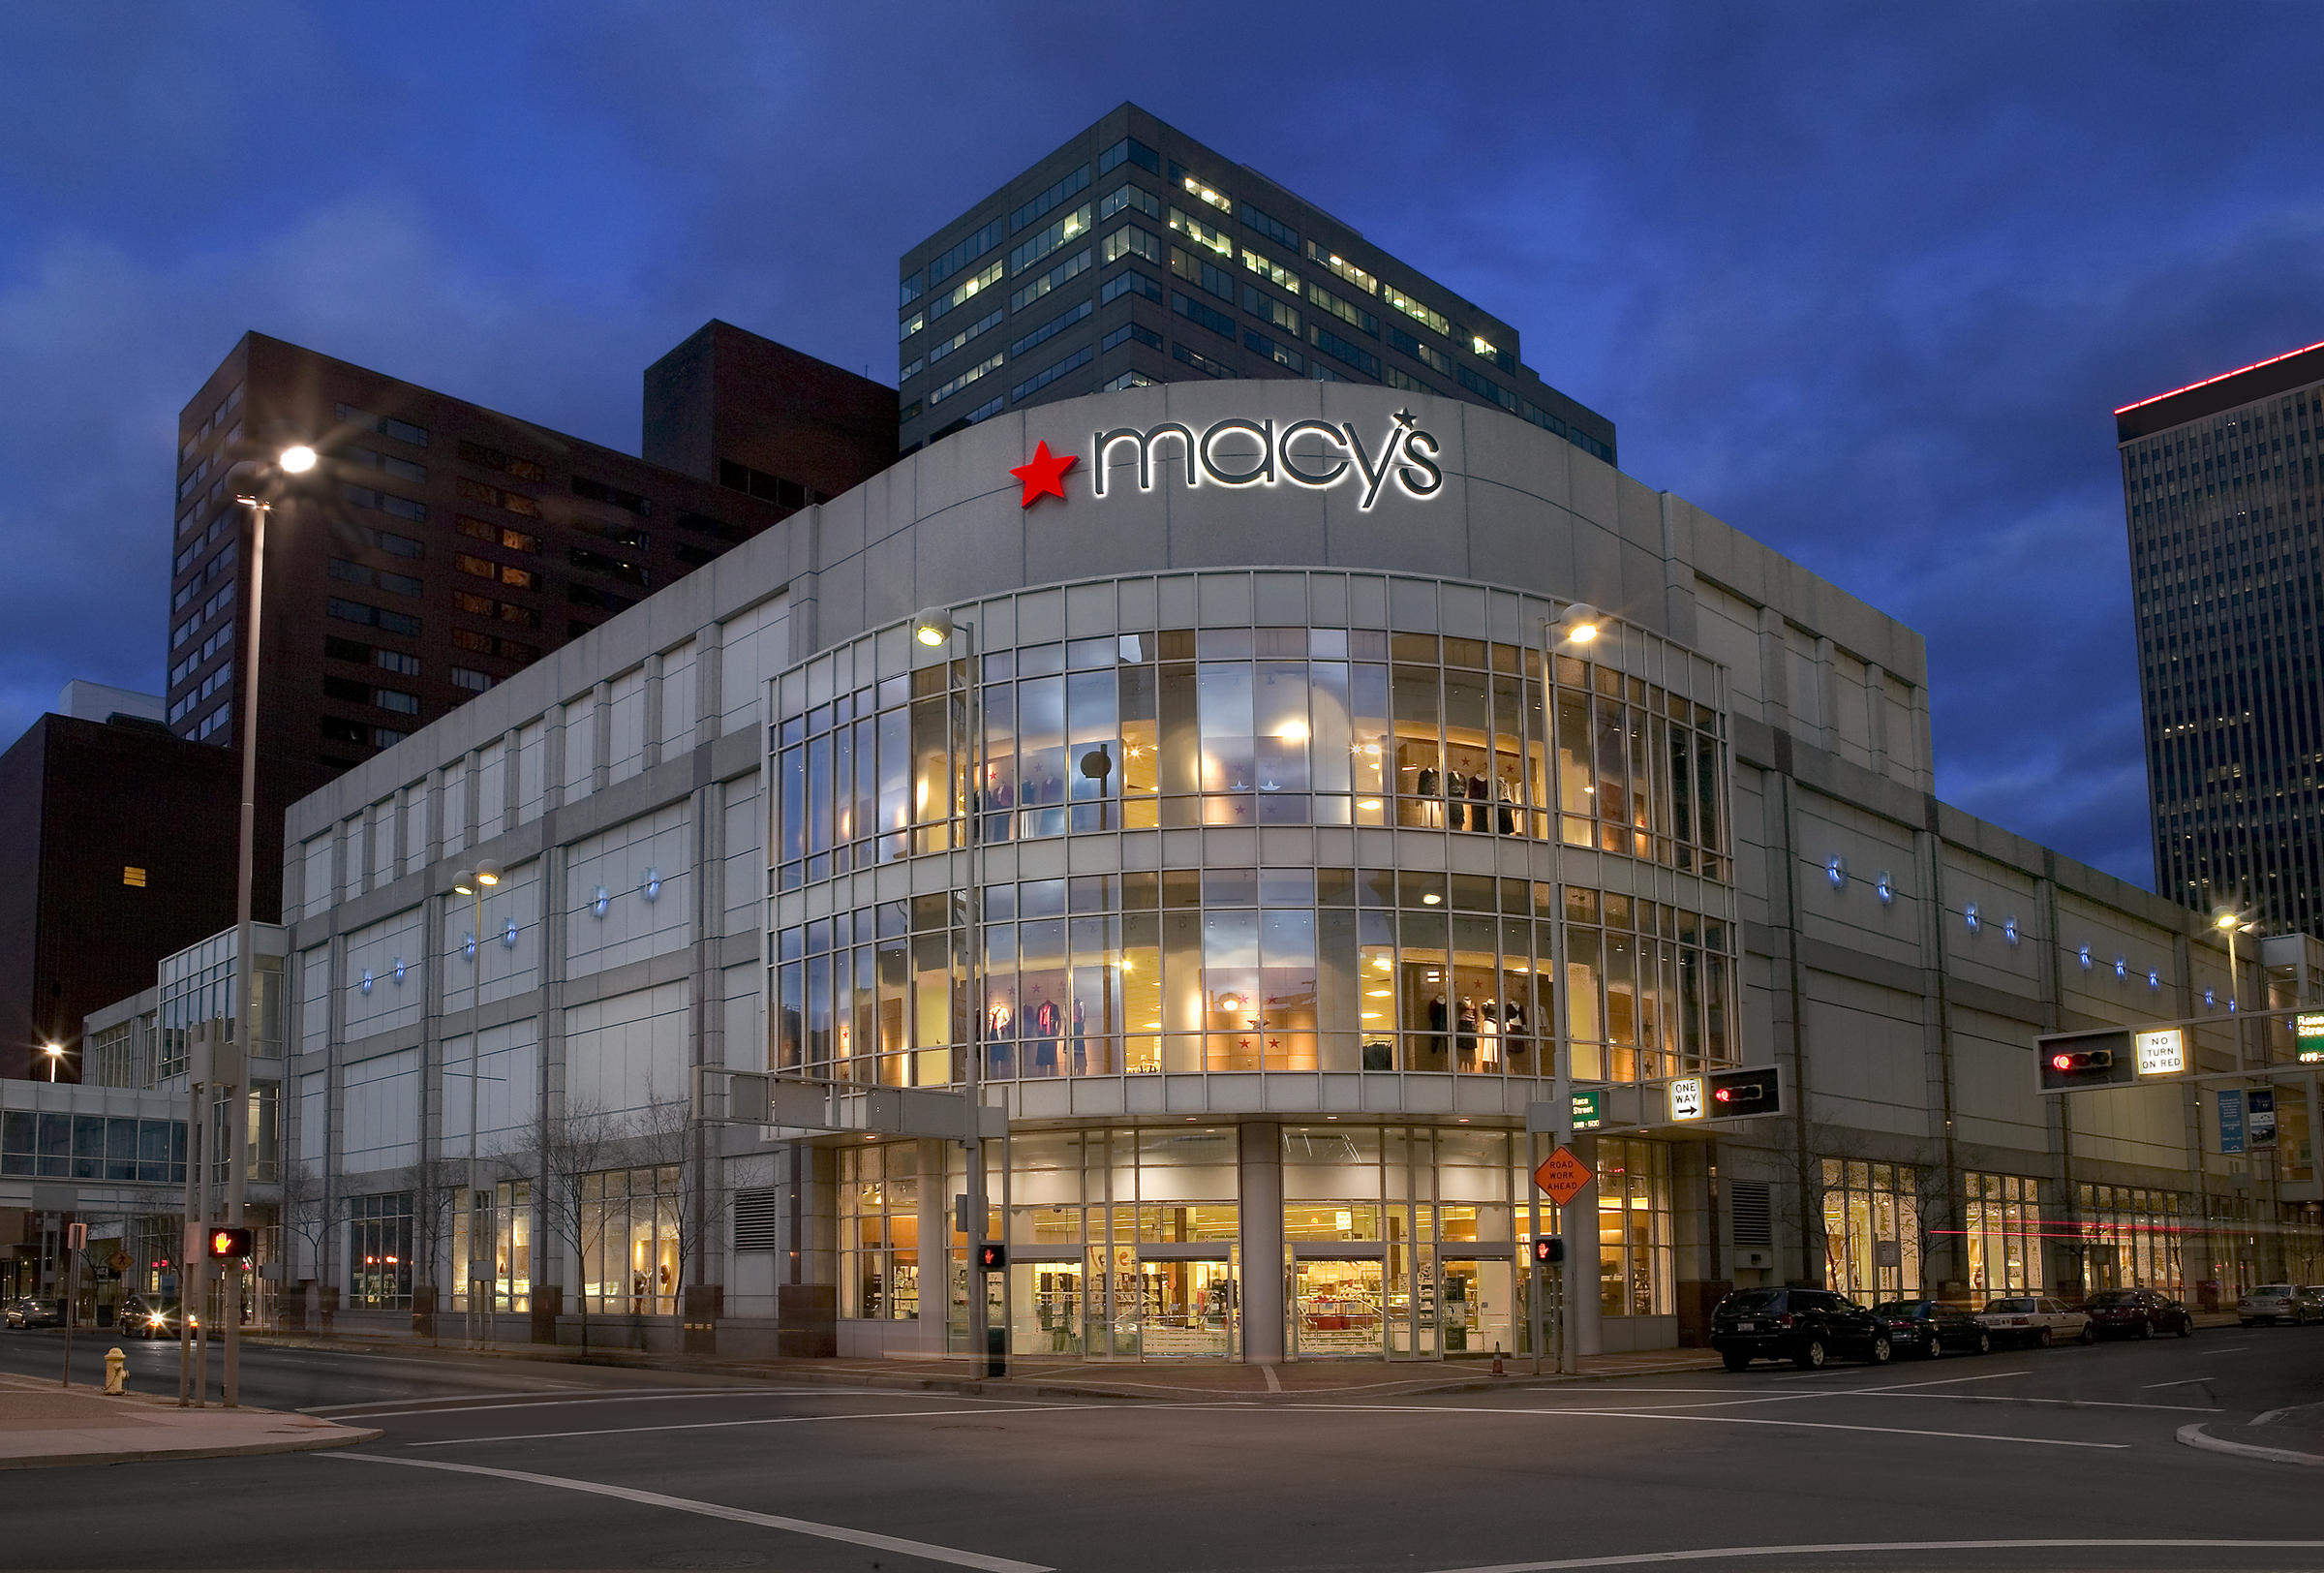 Jun 05,  · Hudson's Bay Co. will close up to 10 Lord & Taylor stores, including the Fifth Avenue location in New York City, as department stores grasp for stability amid retail upheaval.